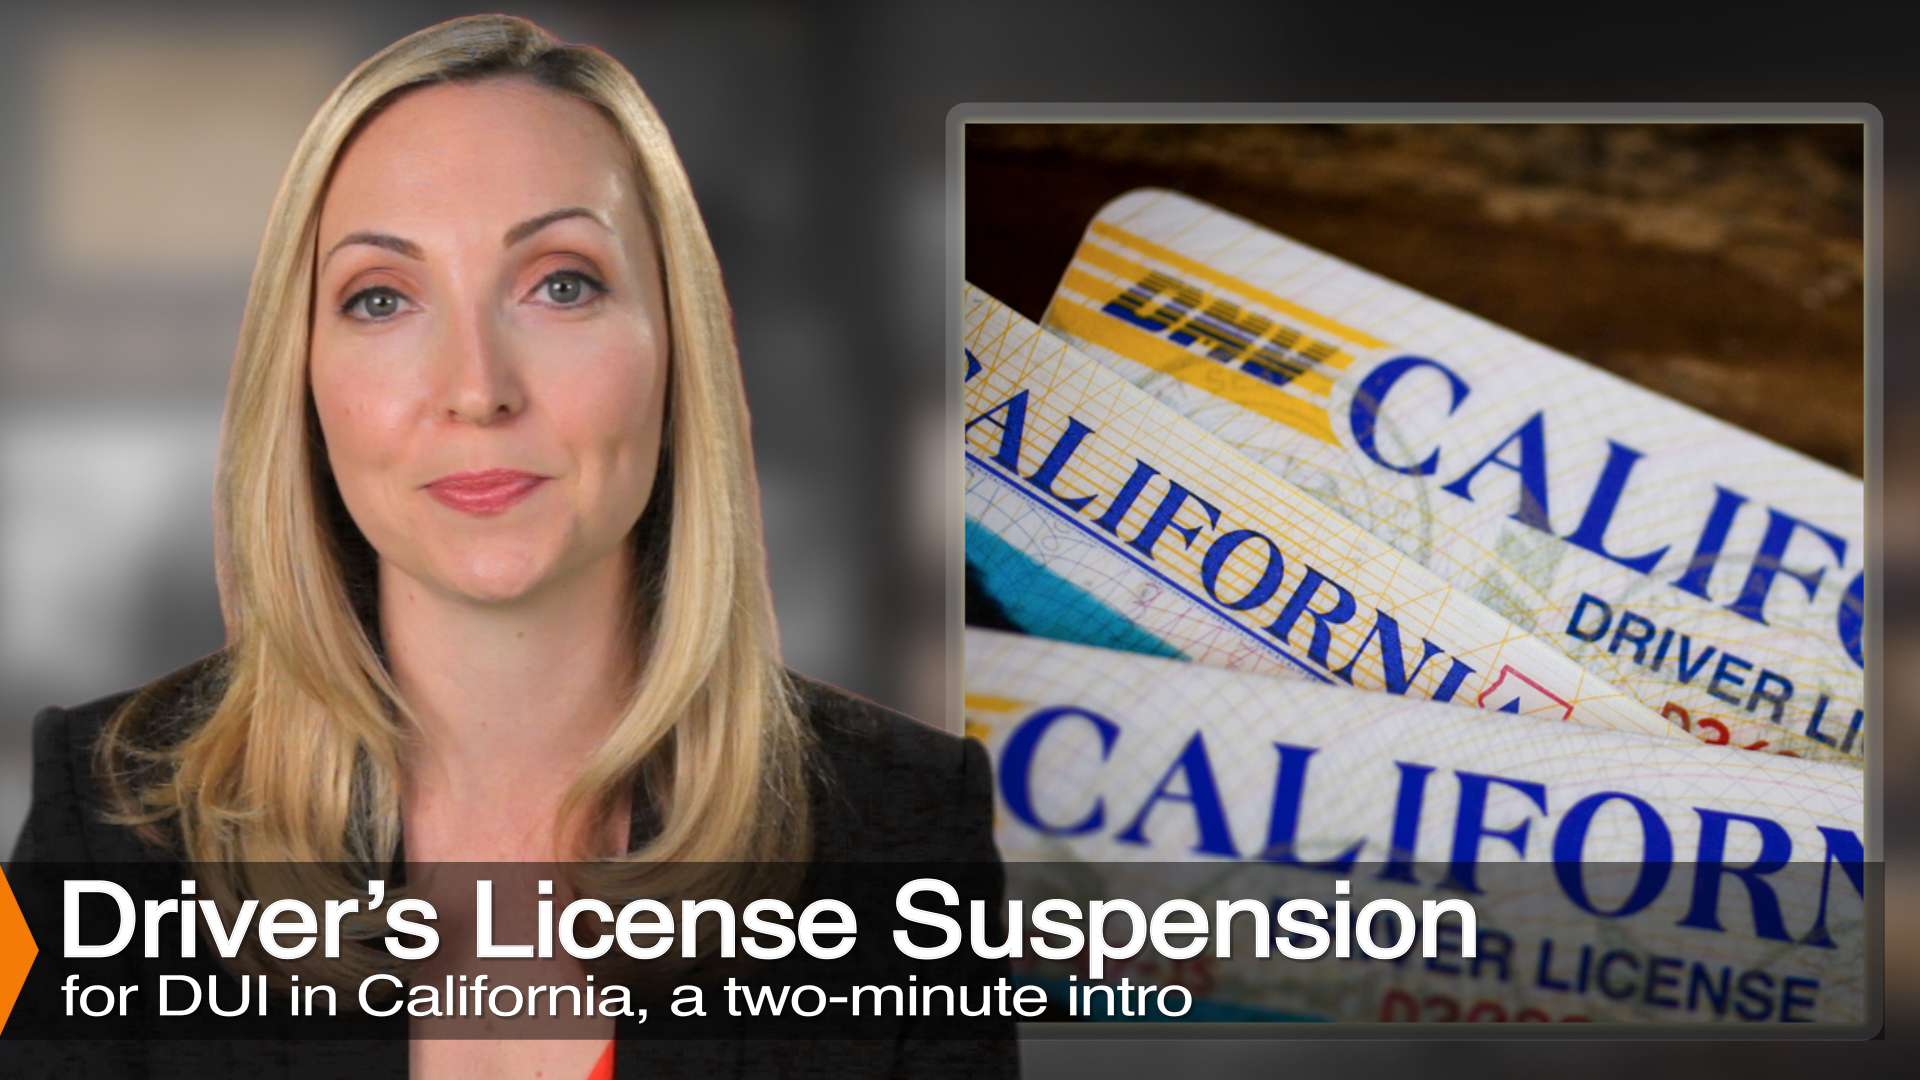 license suspension for dui under 21 in california